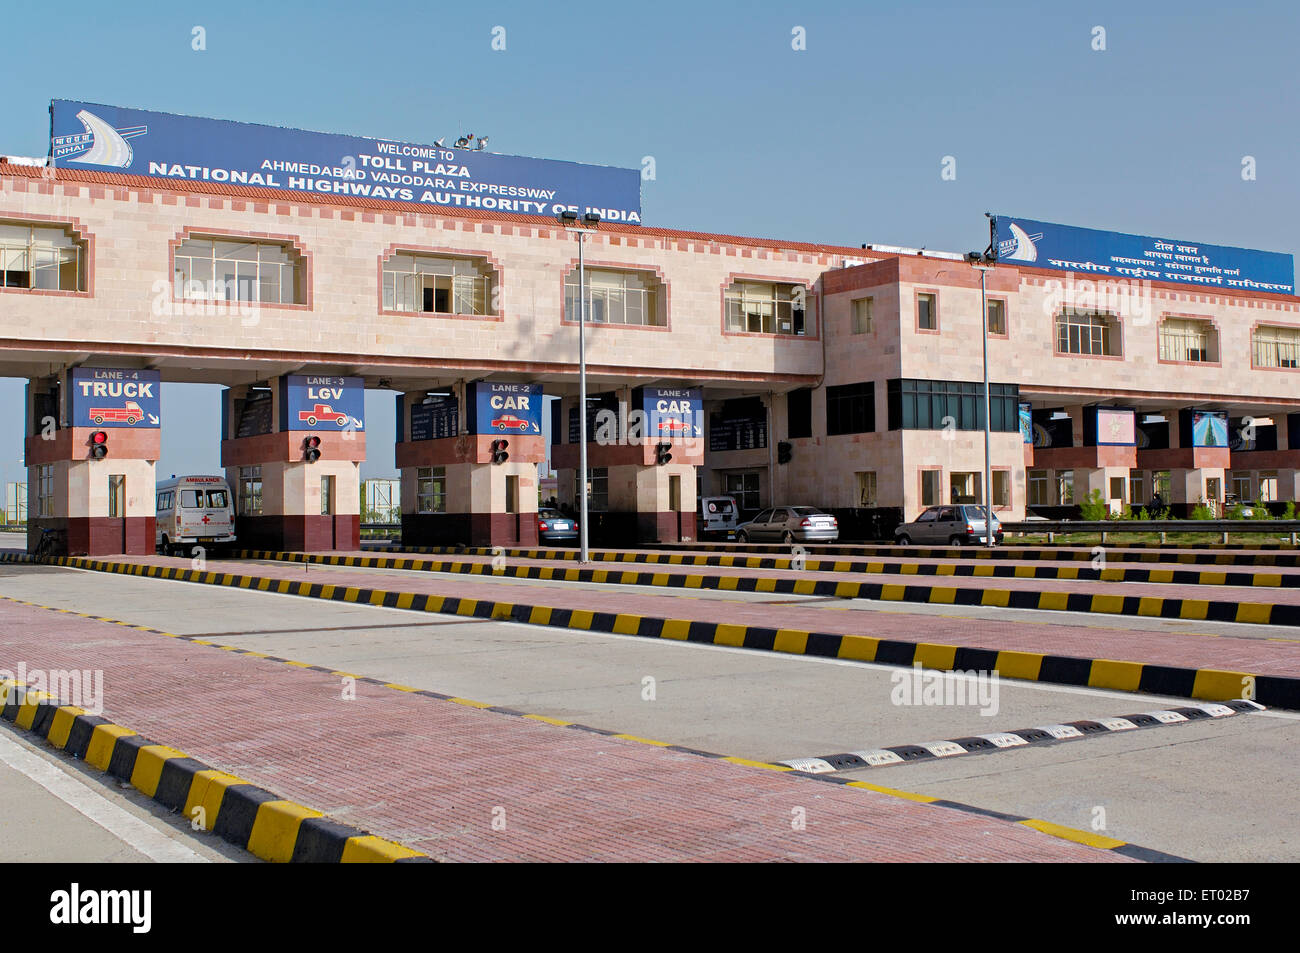 Toll plaza at Ahmedabad Vadodara Expressway National Highways Authority of India - Stock Image